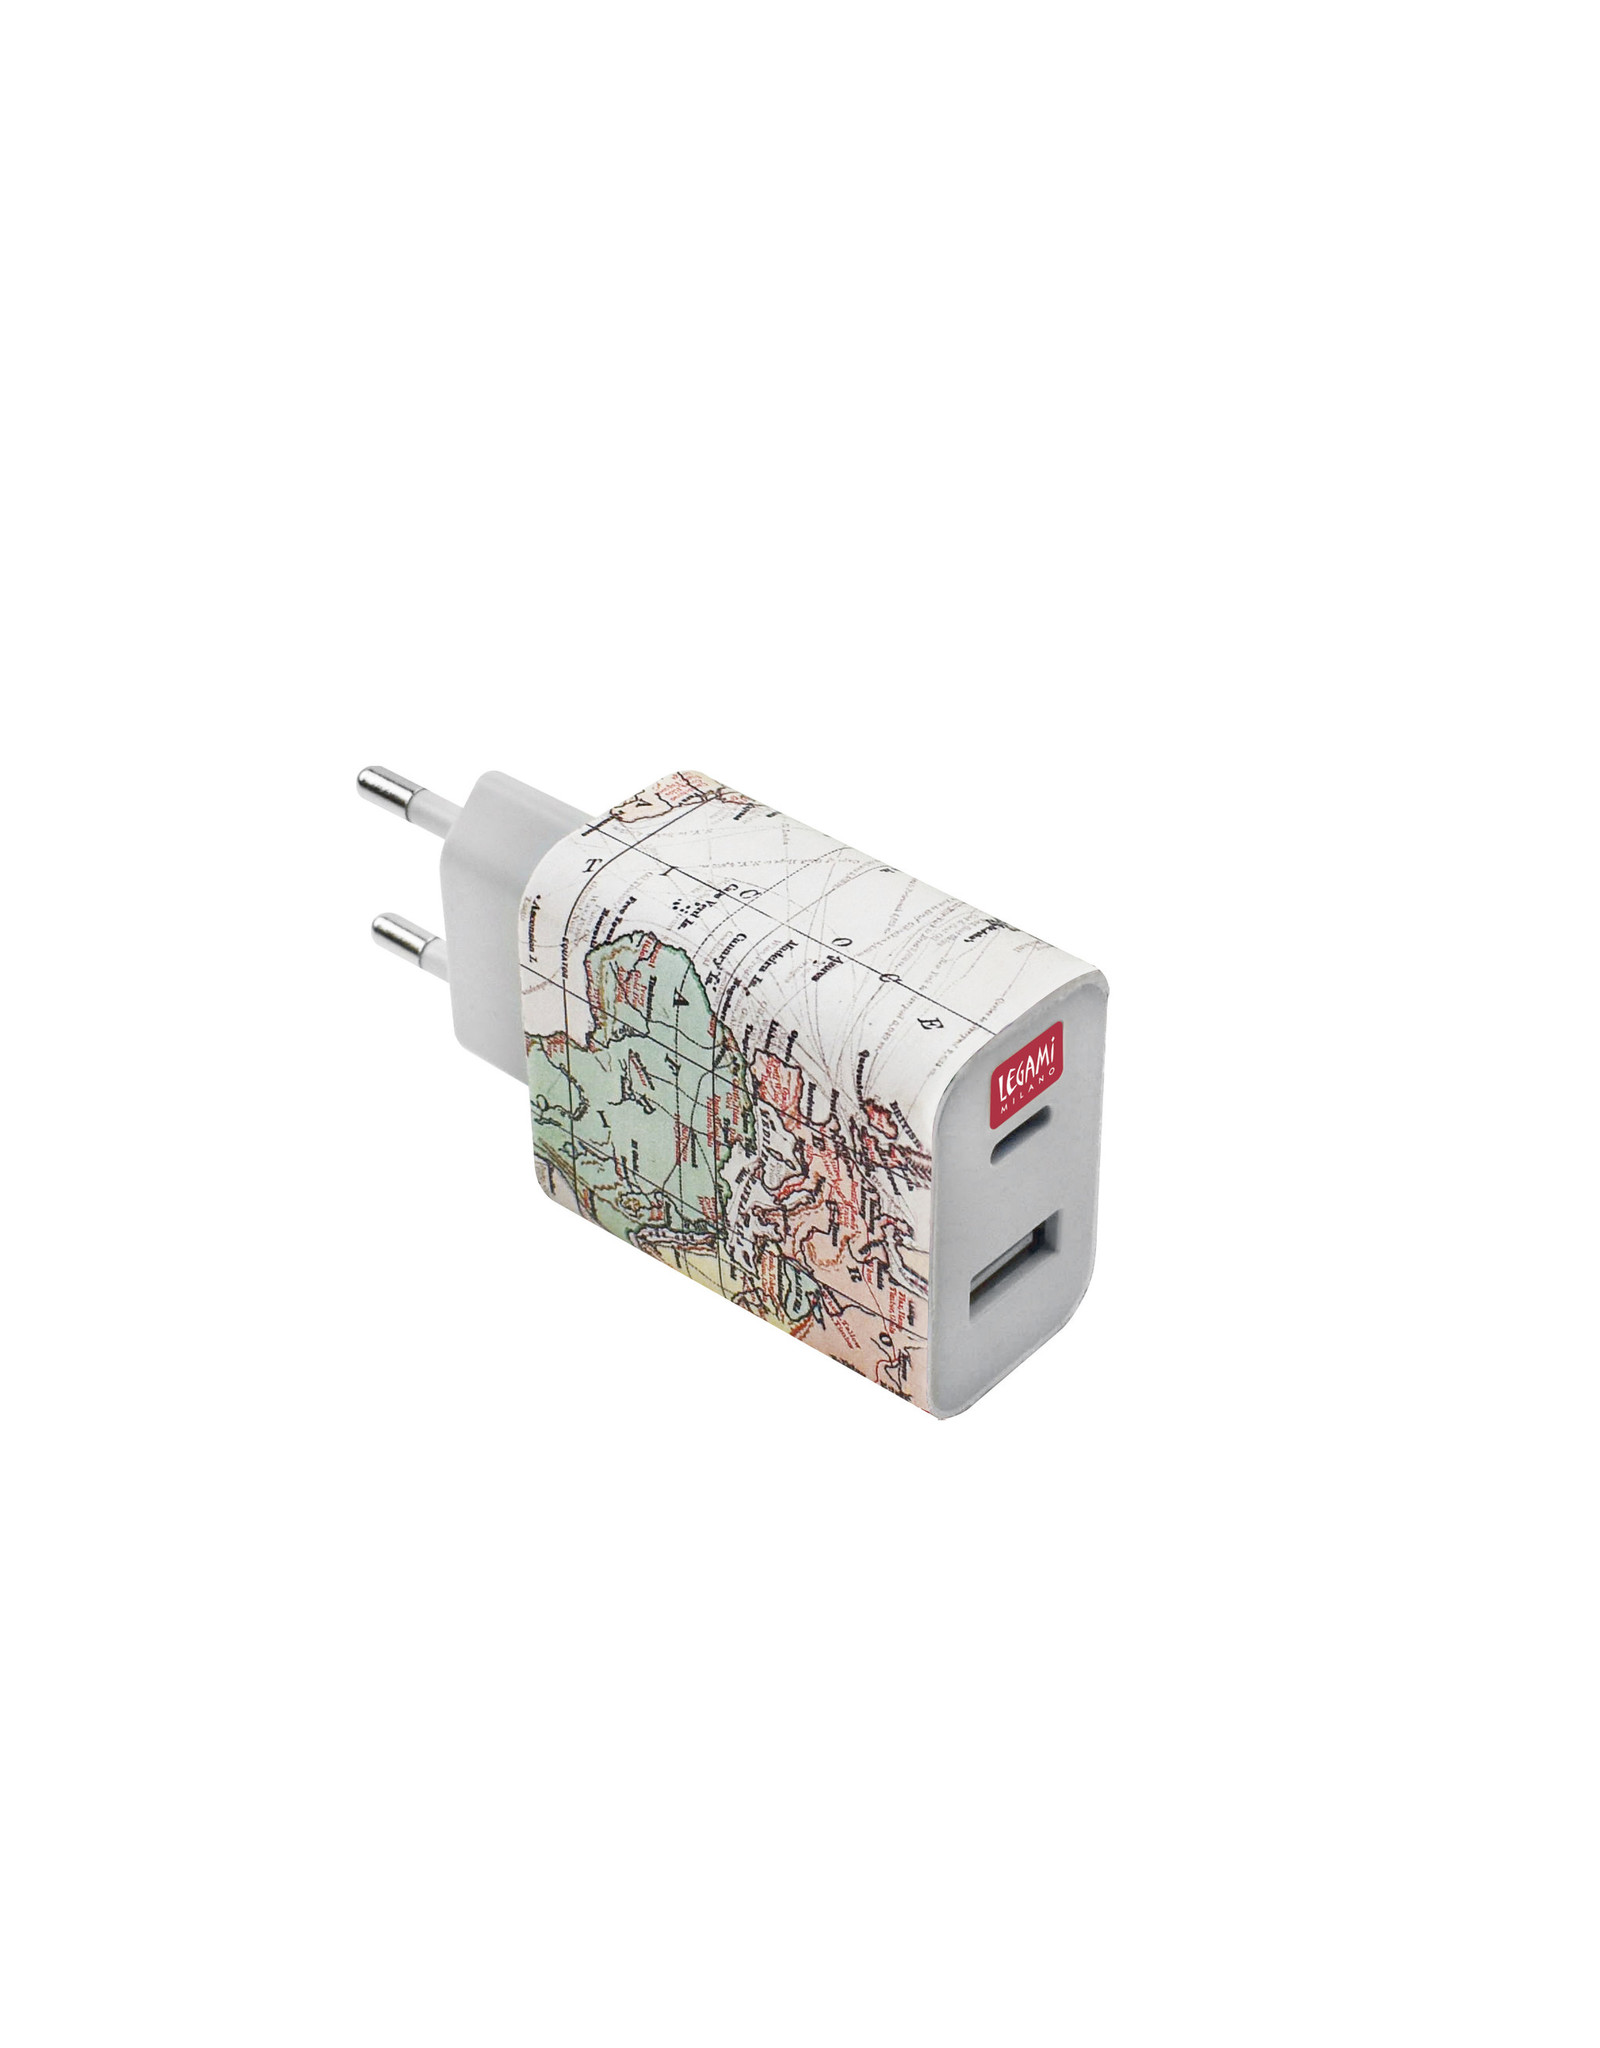 Legami adapter for USB connections